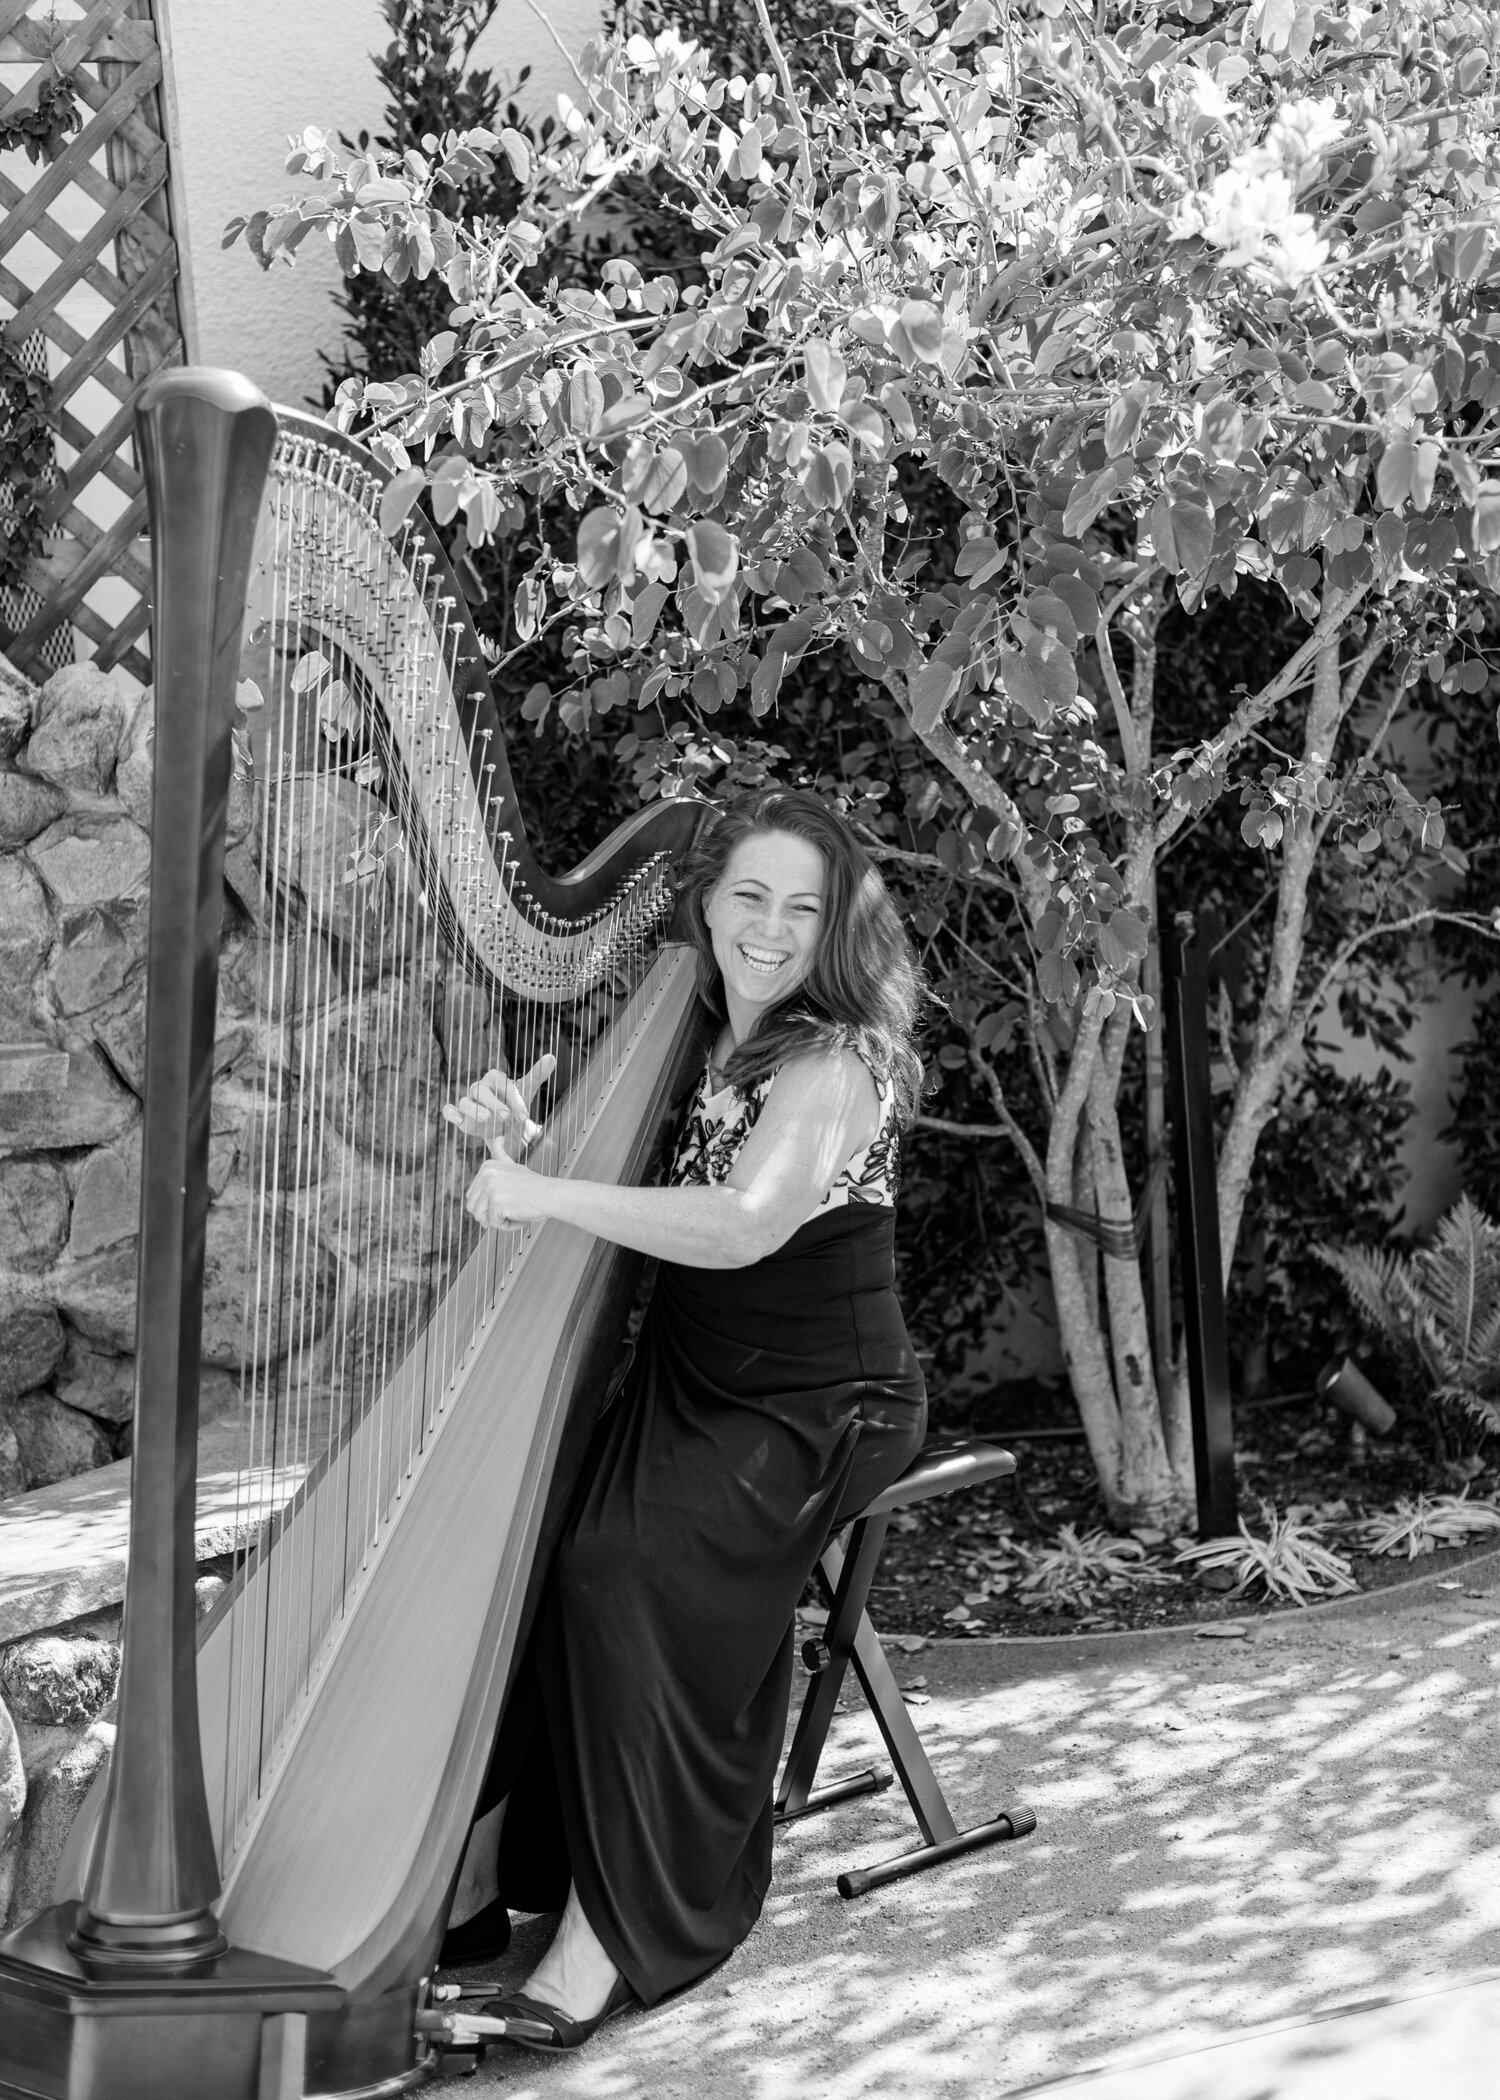 www.santabarbarawedding.com   Events by Fran   Ever After Petite Venue   Kendall Ann Photo   Tangled Lotus   Amigo Party Rentals   Harpist VeeRonna   The Ceremony Musician